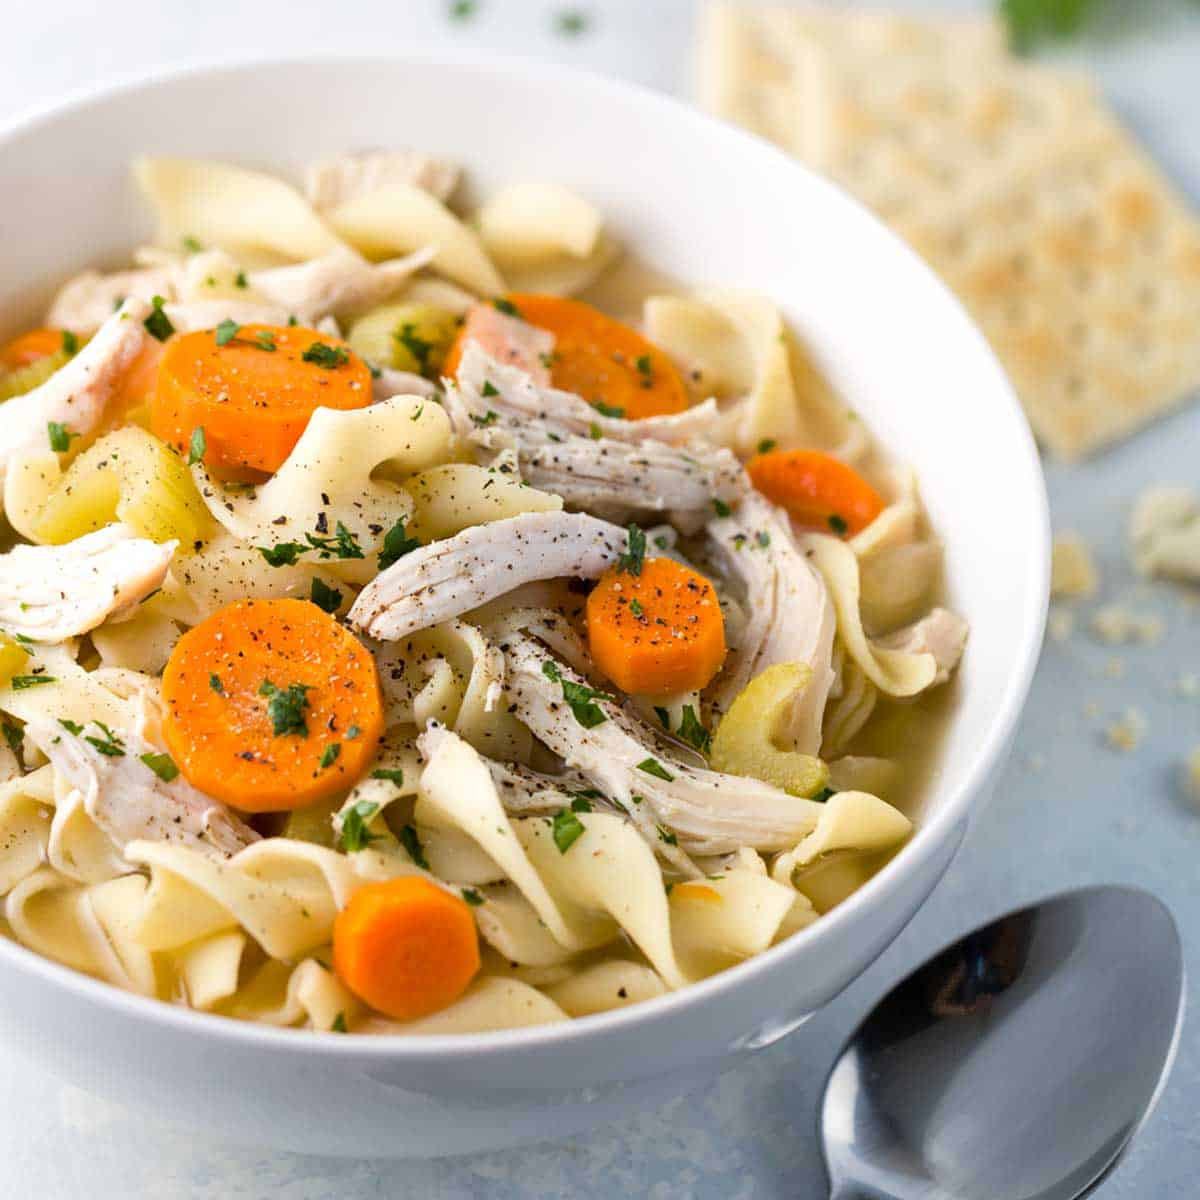 Easy Crockpot Chicken Noodle Soup  Easy Slow Cooker Chicken Noodle Soup Recipe